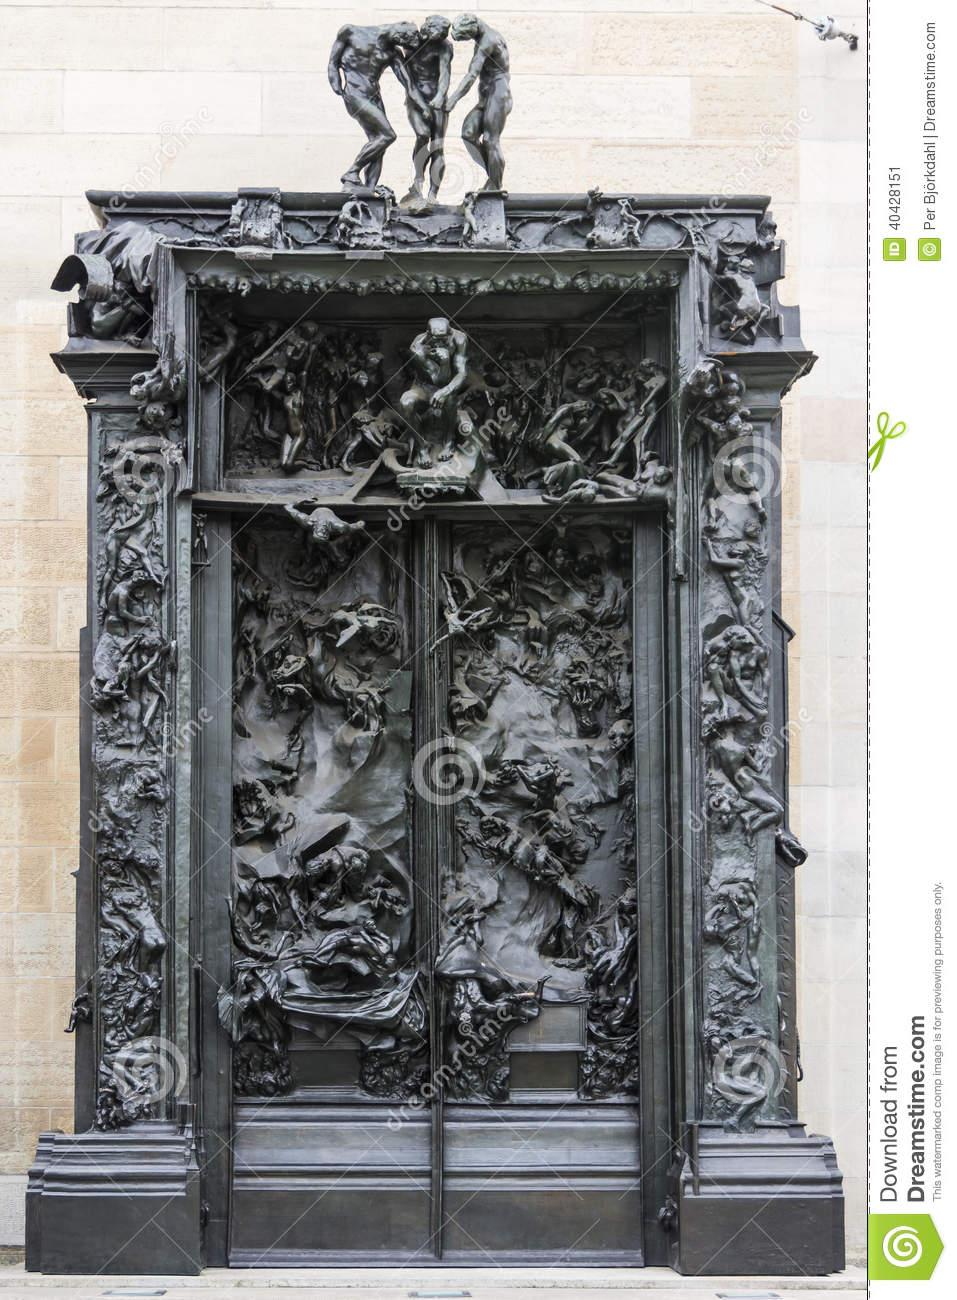 The gates of hell zurich stock image image of zuerich 40428151 - La porte de l enfer rodin ...